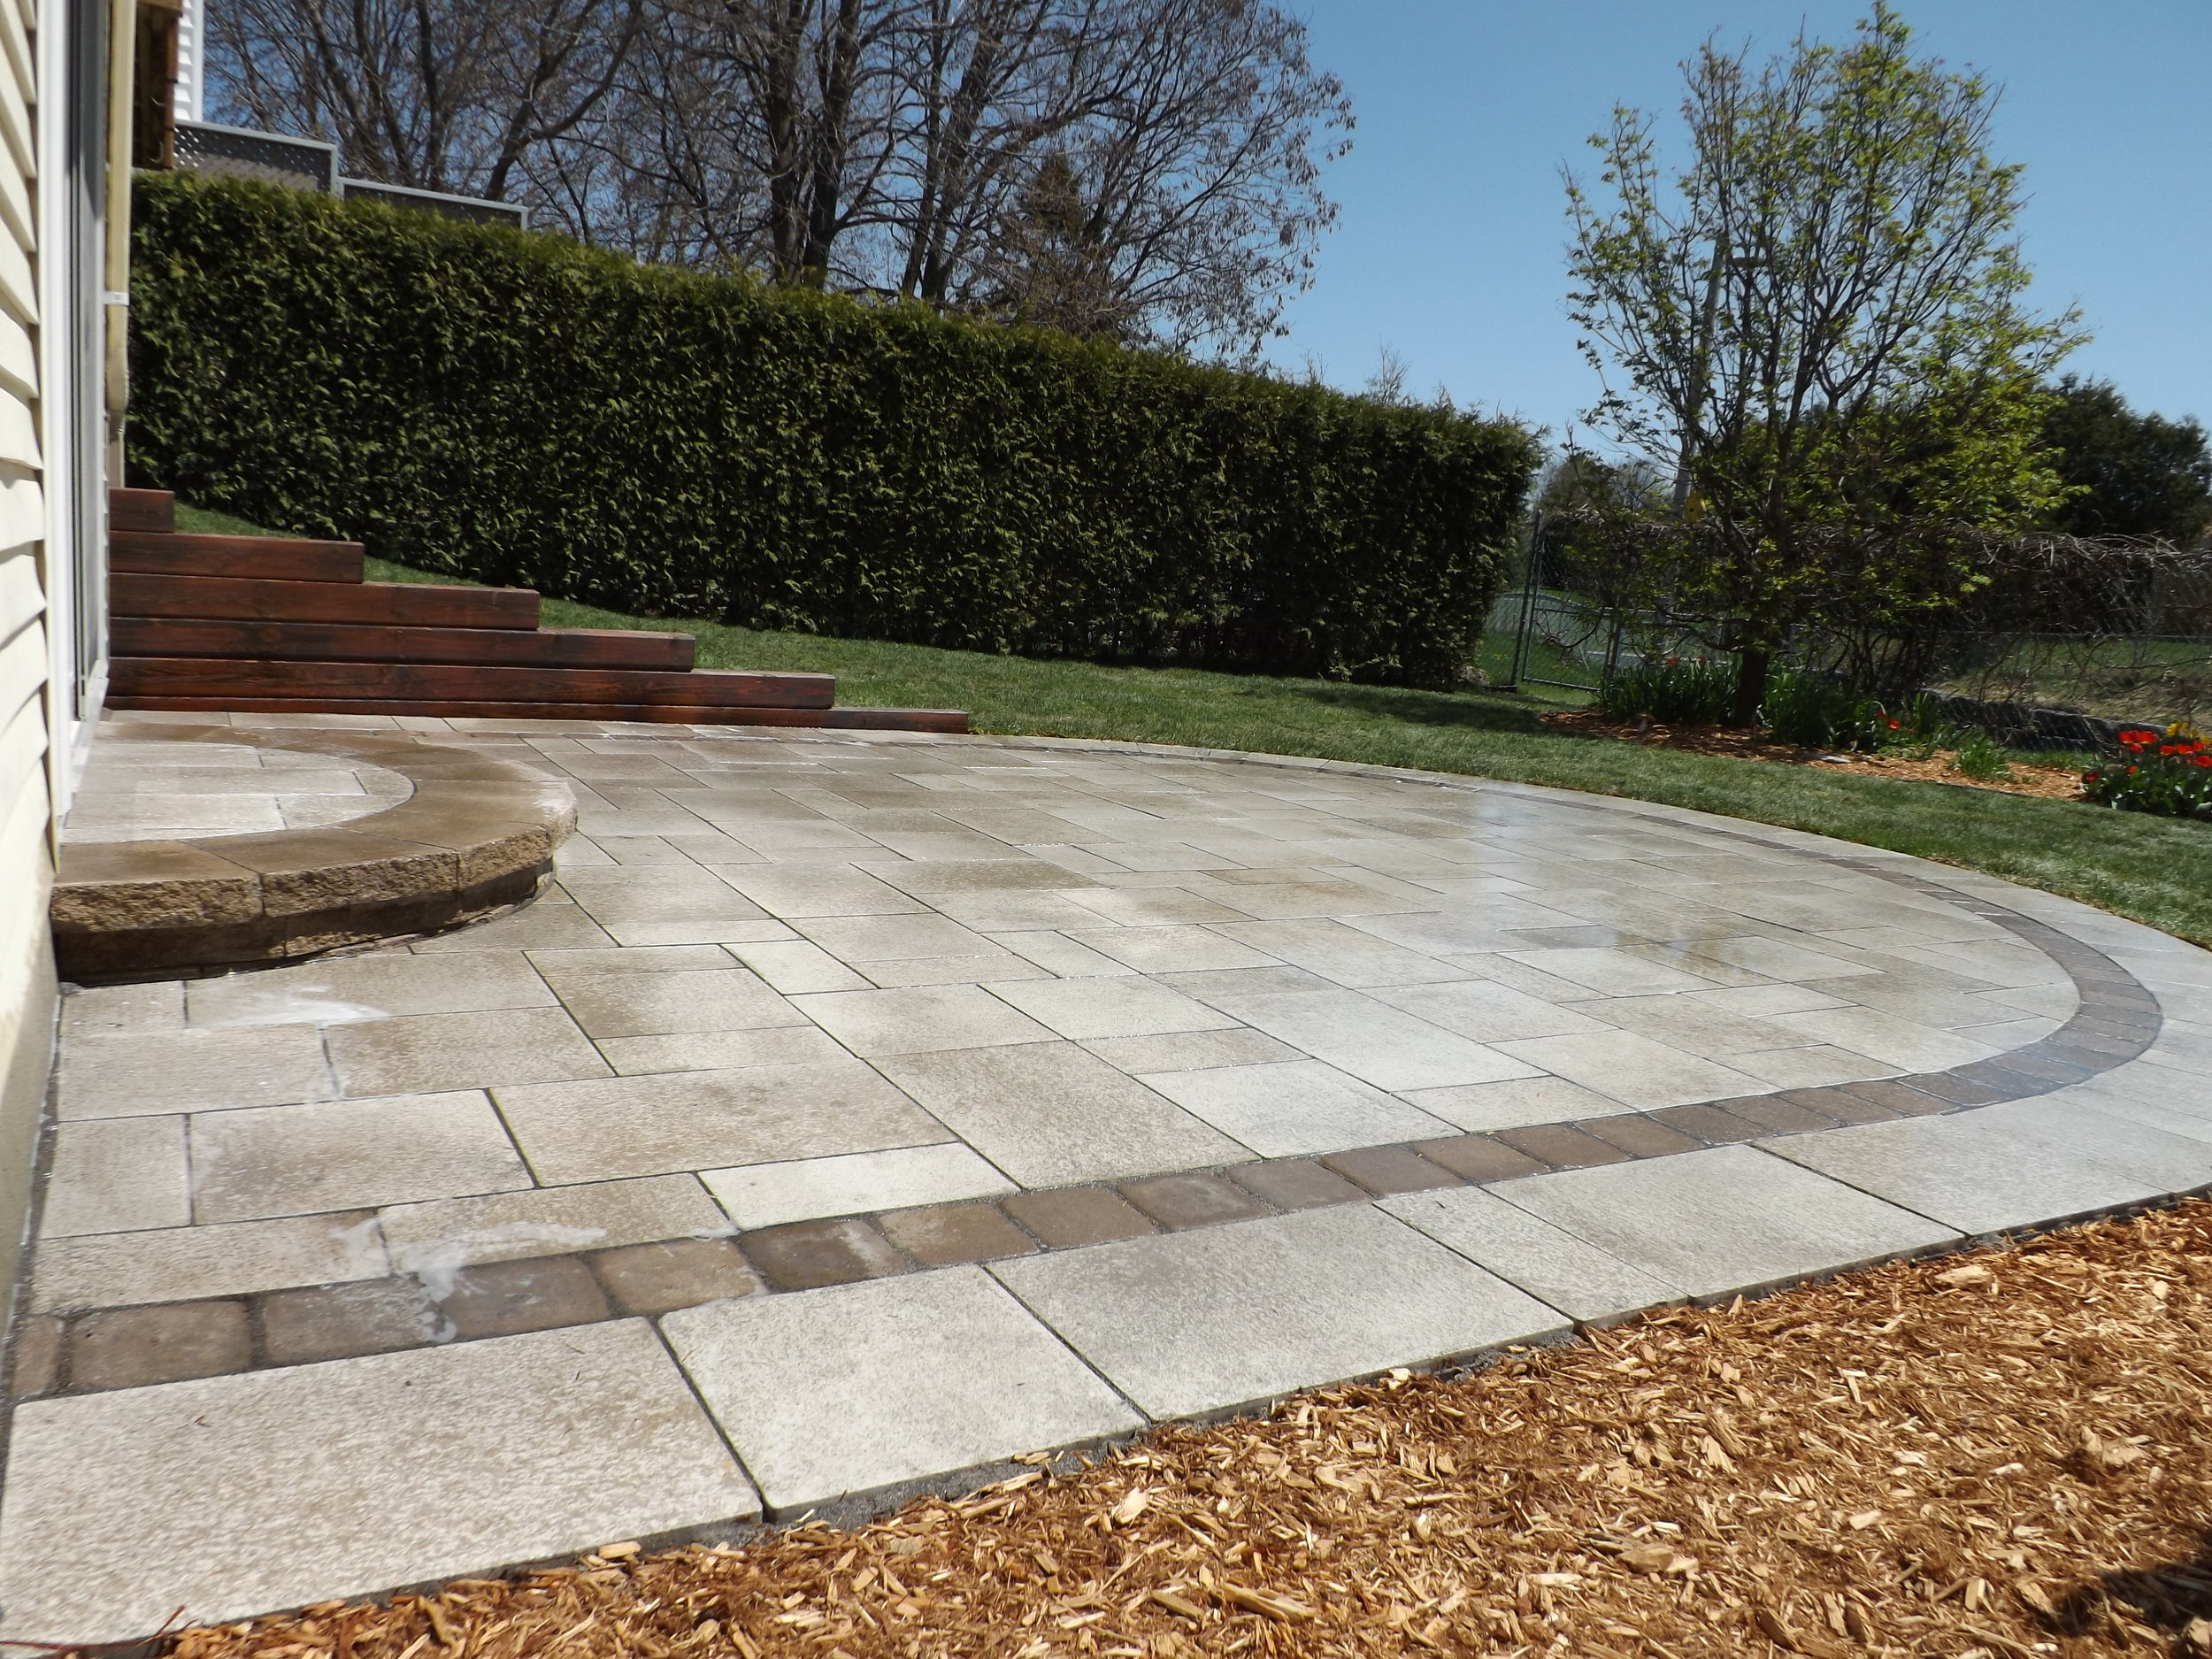 Interlock Pavers   Interlock pavers can add beauty to your front, side, and backyard that can stand up to our climate in Ottawa.